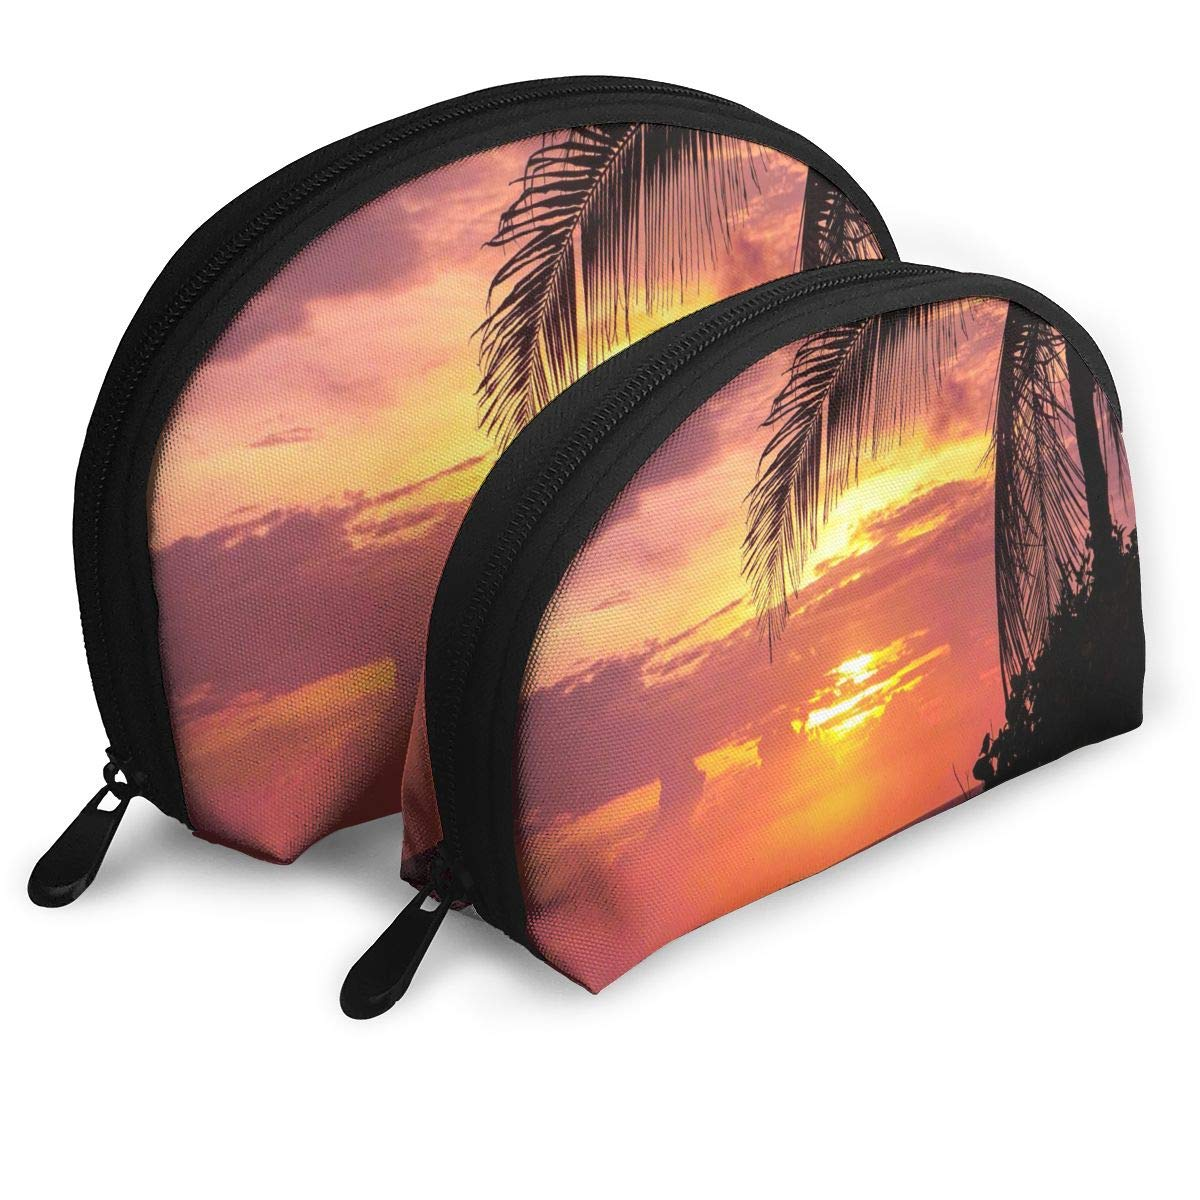 Half Moon Cosmetic Bag Sunset Beach And Plam Tree Travel Makeup Pouch Toiletry Bag Set of 2 for Women